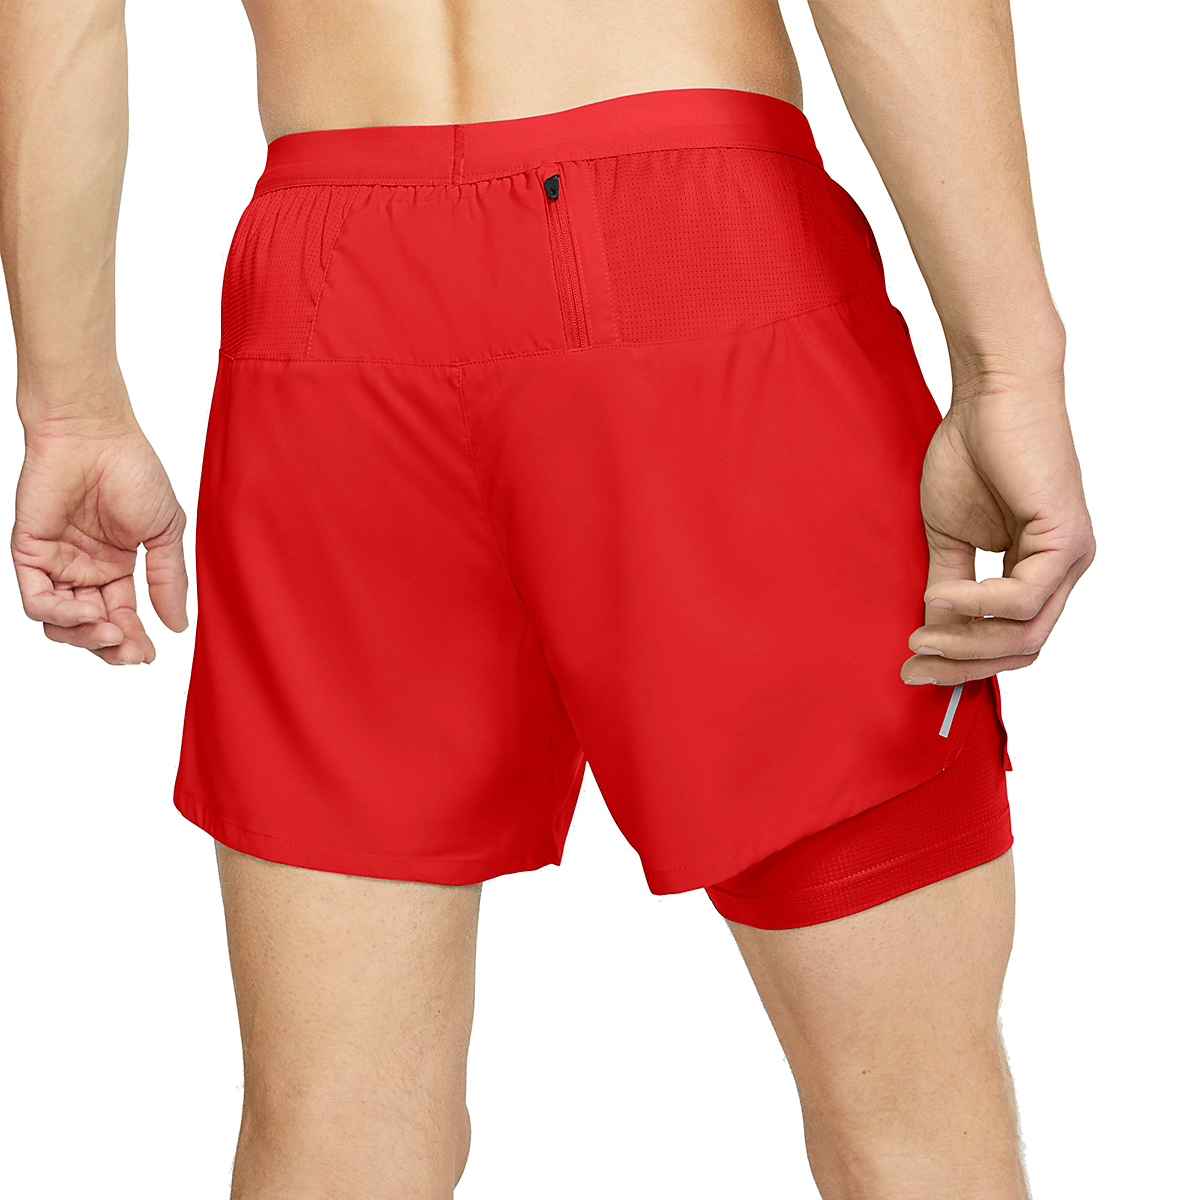 """Men's Nike Flex Stride 5"""" 2-In-1 Running Shorts - Color: Chile Red - Size: L, Chile Red, large, image 3"""